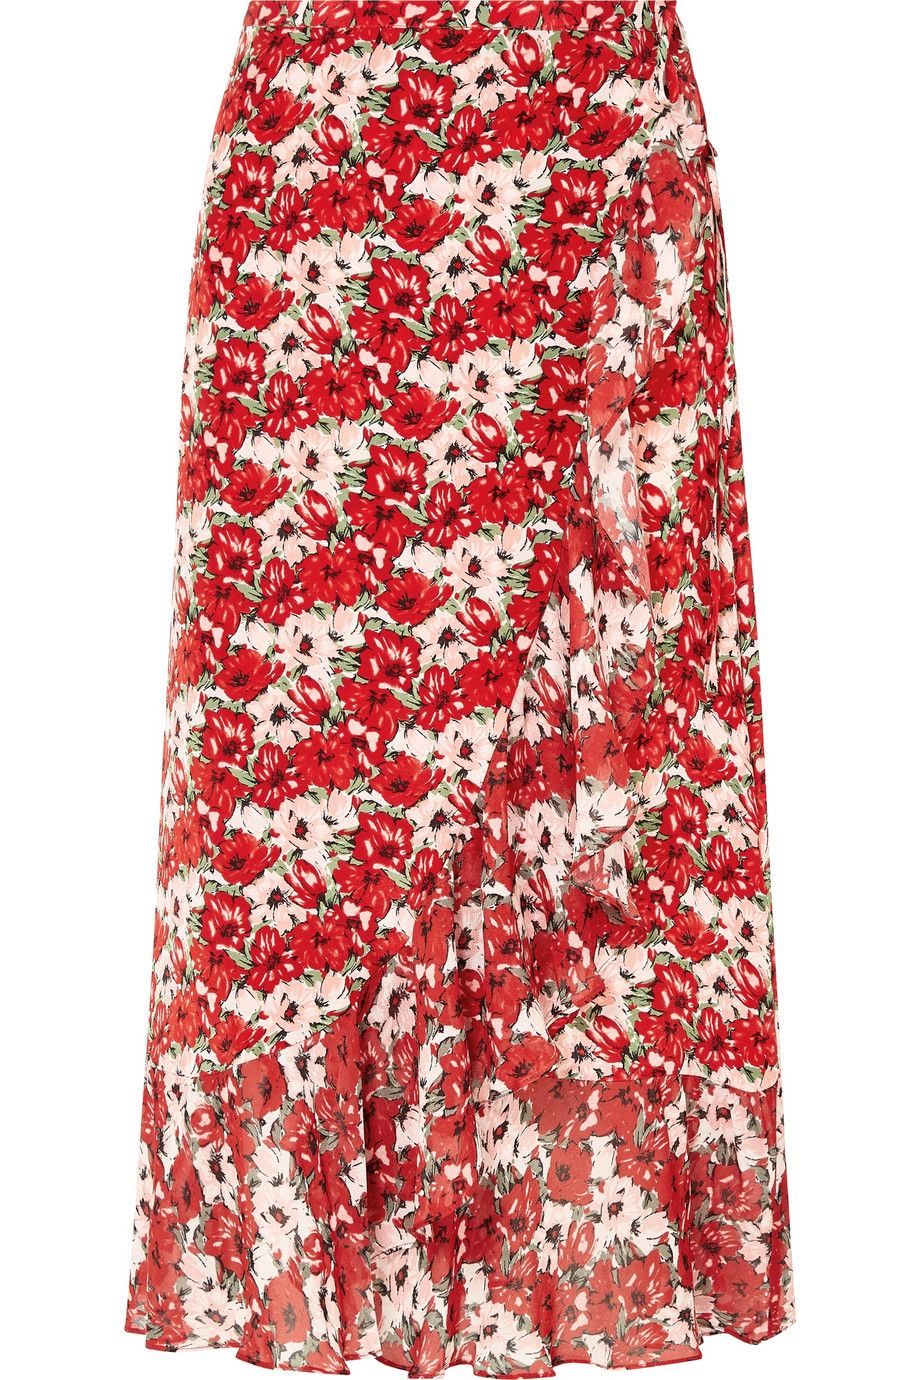 """Gracie Wrap Skirt Rixo net-a-porter.com $227.50 SHOP NOW """"I've decided that all I want to wear to work this summer are midi skirts. They're long enough that I never have to worry about an unexpected gust of wind, they work with pretty much any shoe, and they're almost always office appropriate. This one in bright red makes me happy every time I look at it.""""— Madison Feller, Staff Writer"""